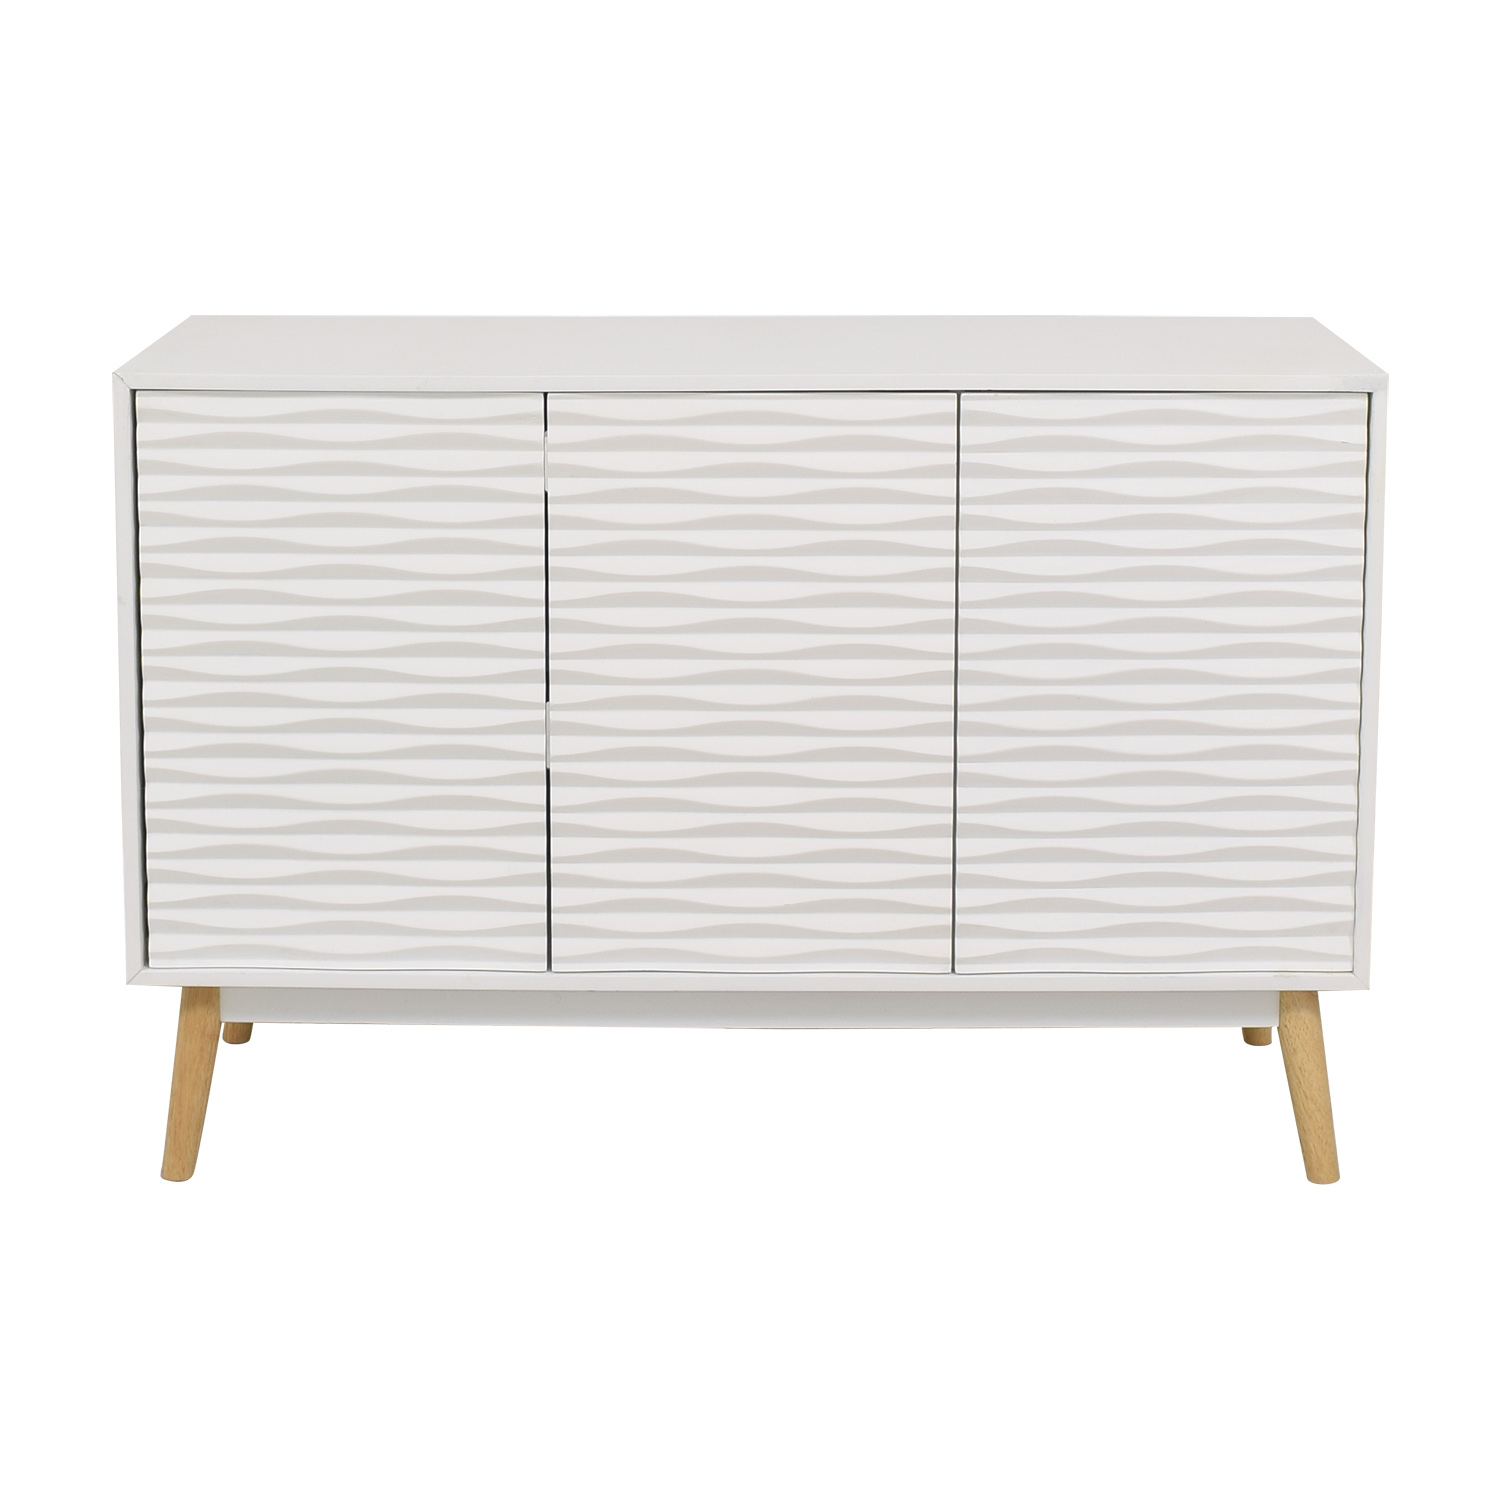 Elle Home Elle Decor Aurie Sideboard French White pa